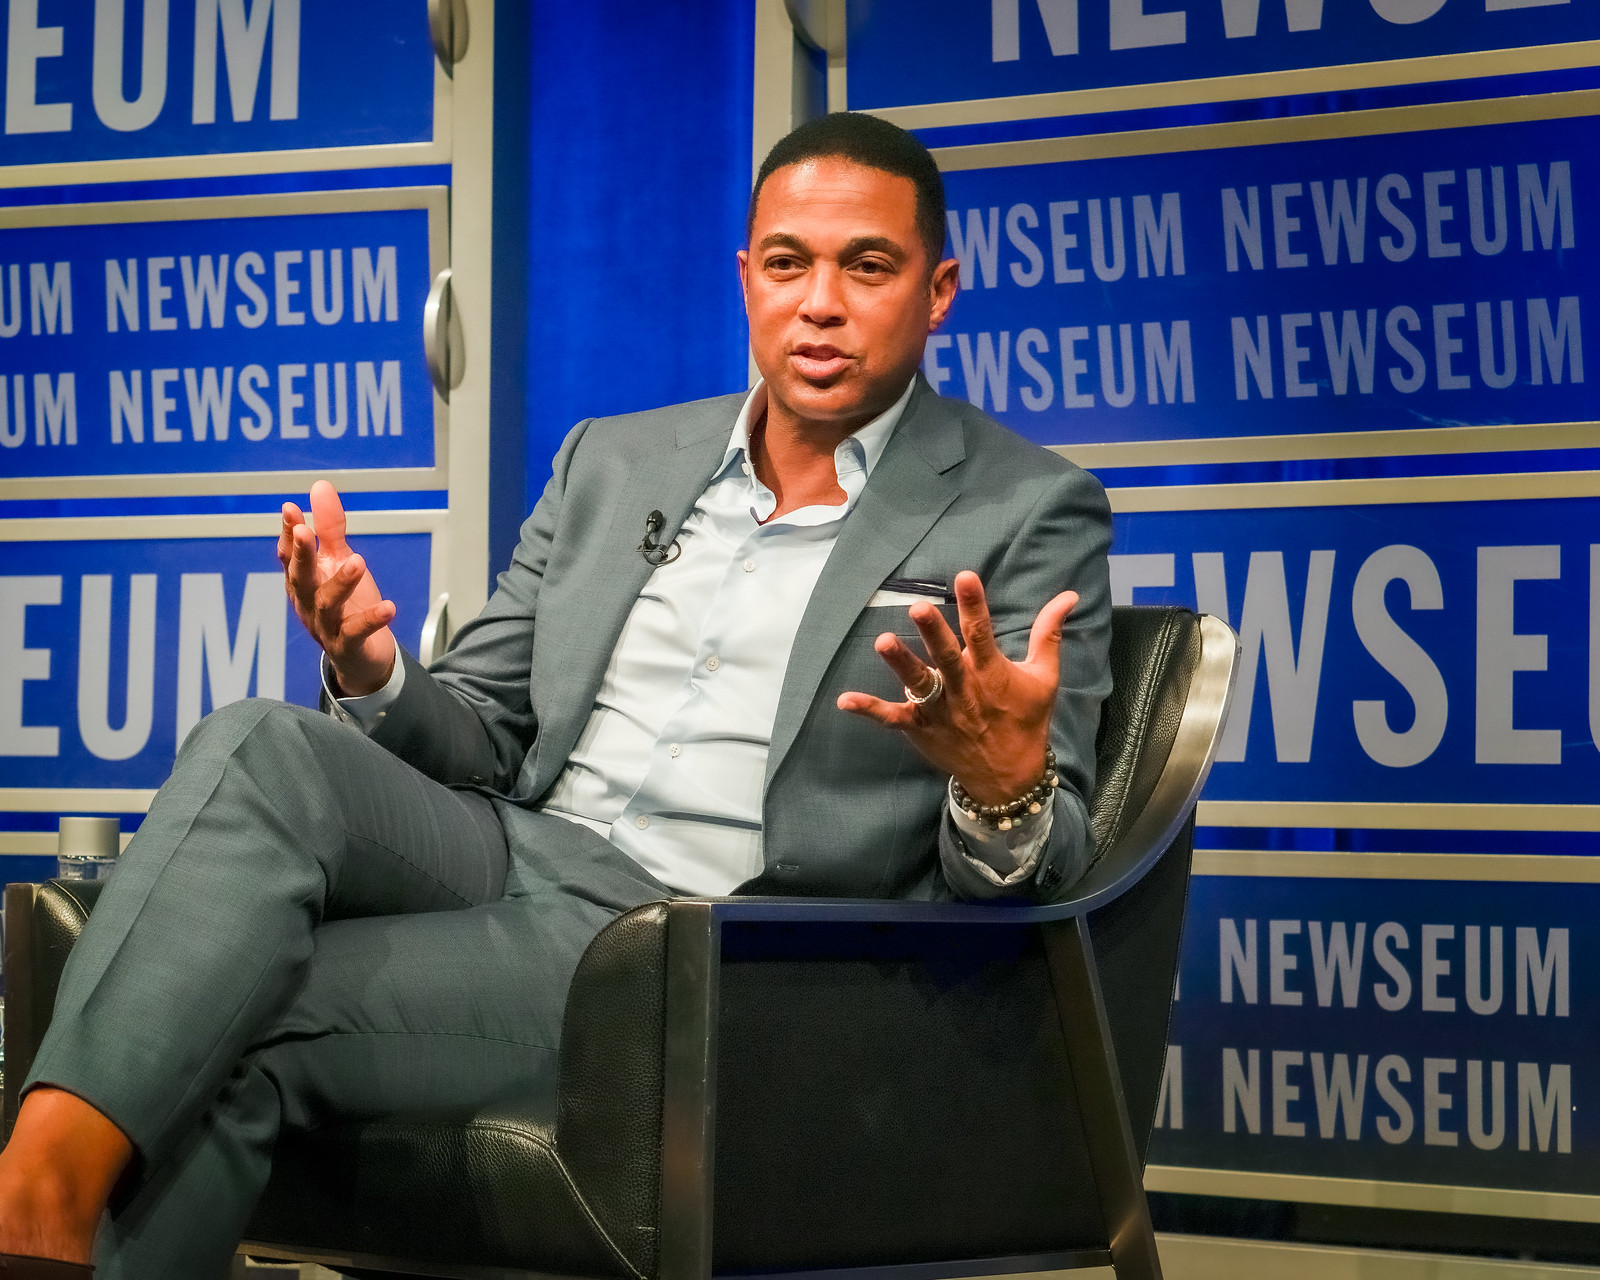 2019.09.12 Rise Up A Conversation with Don Lemon, Washington, DC USA  255 72043